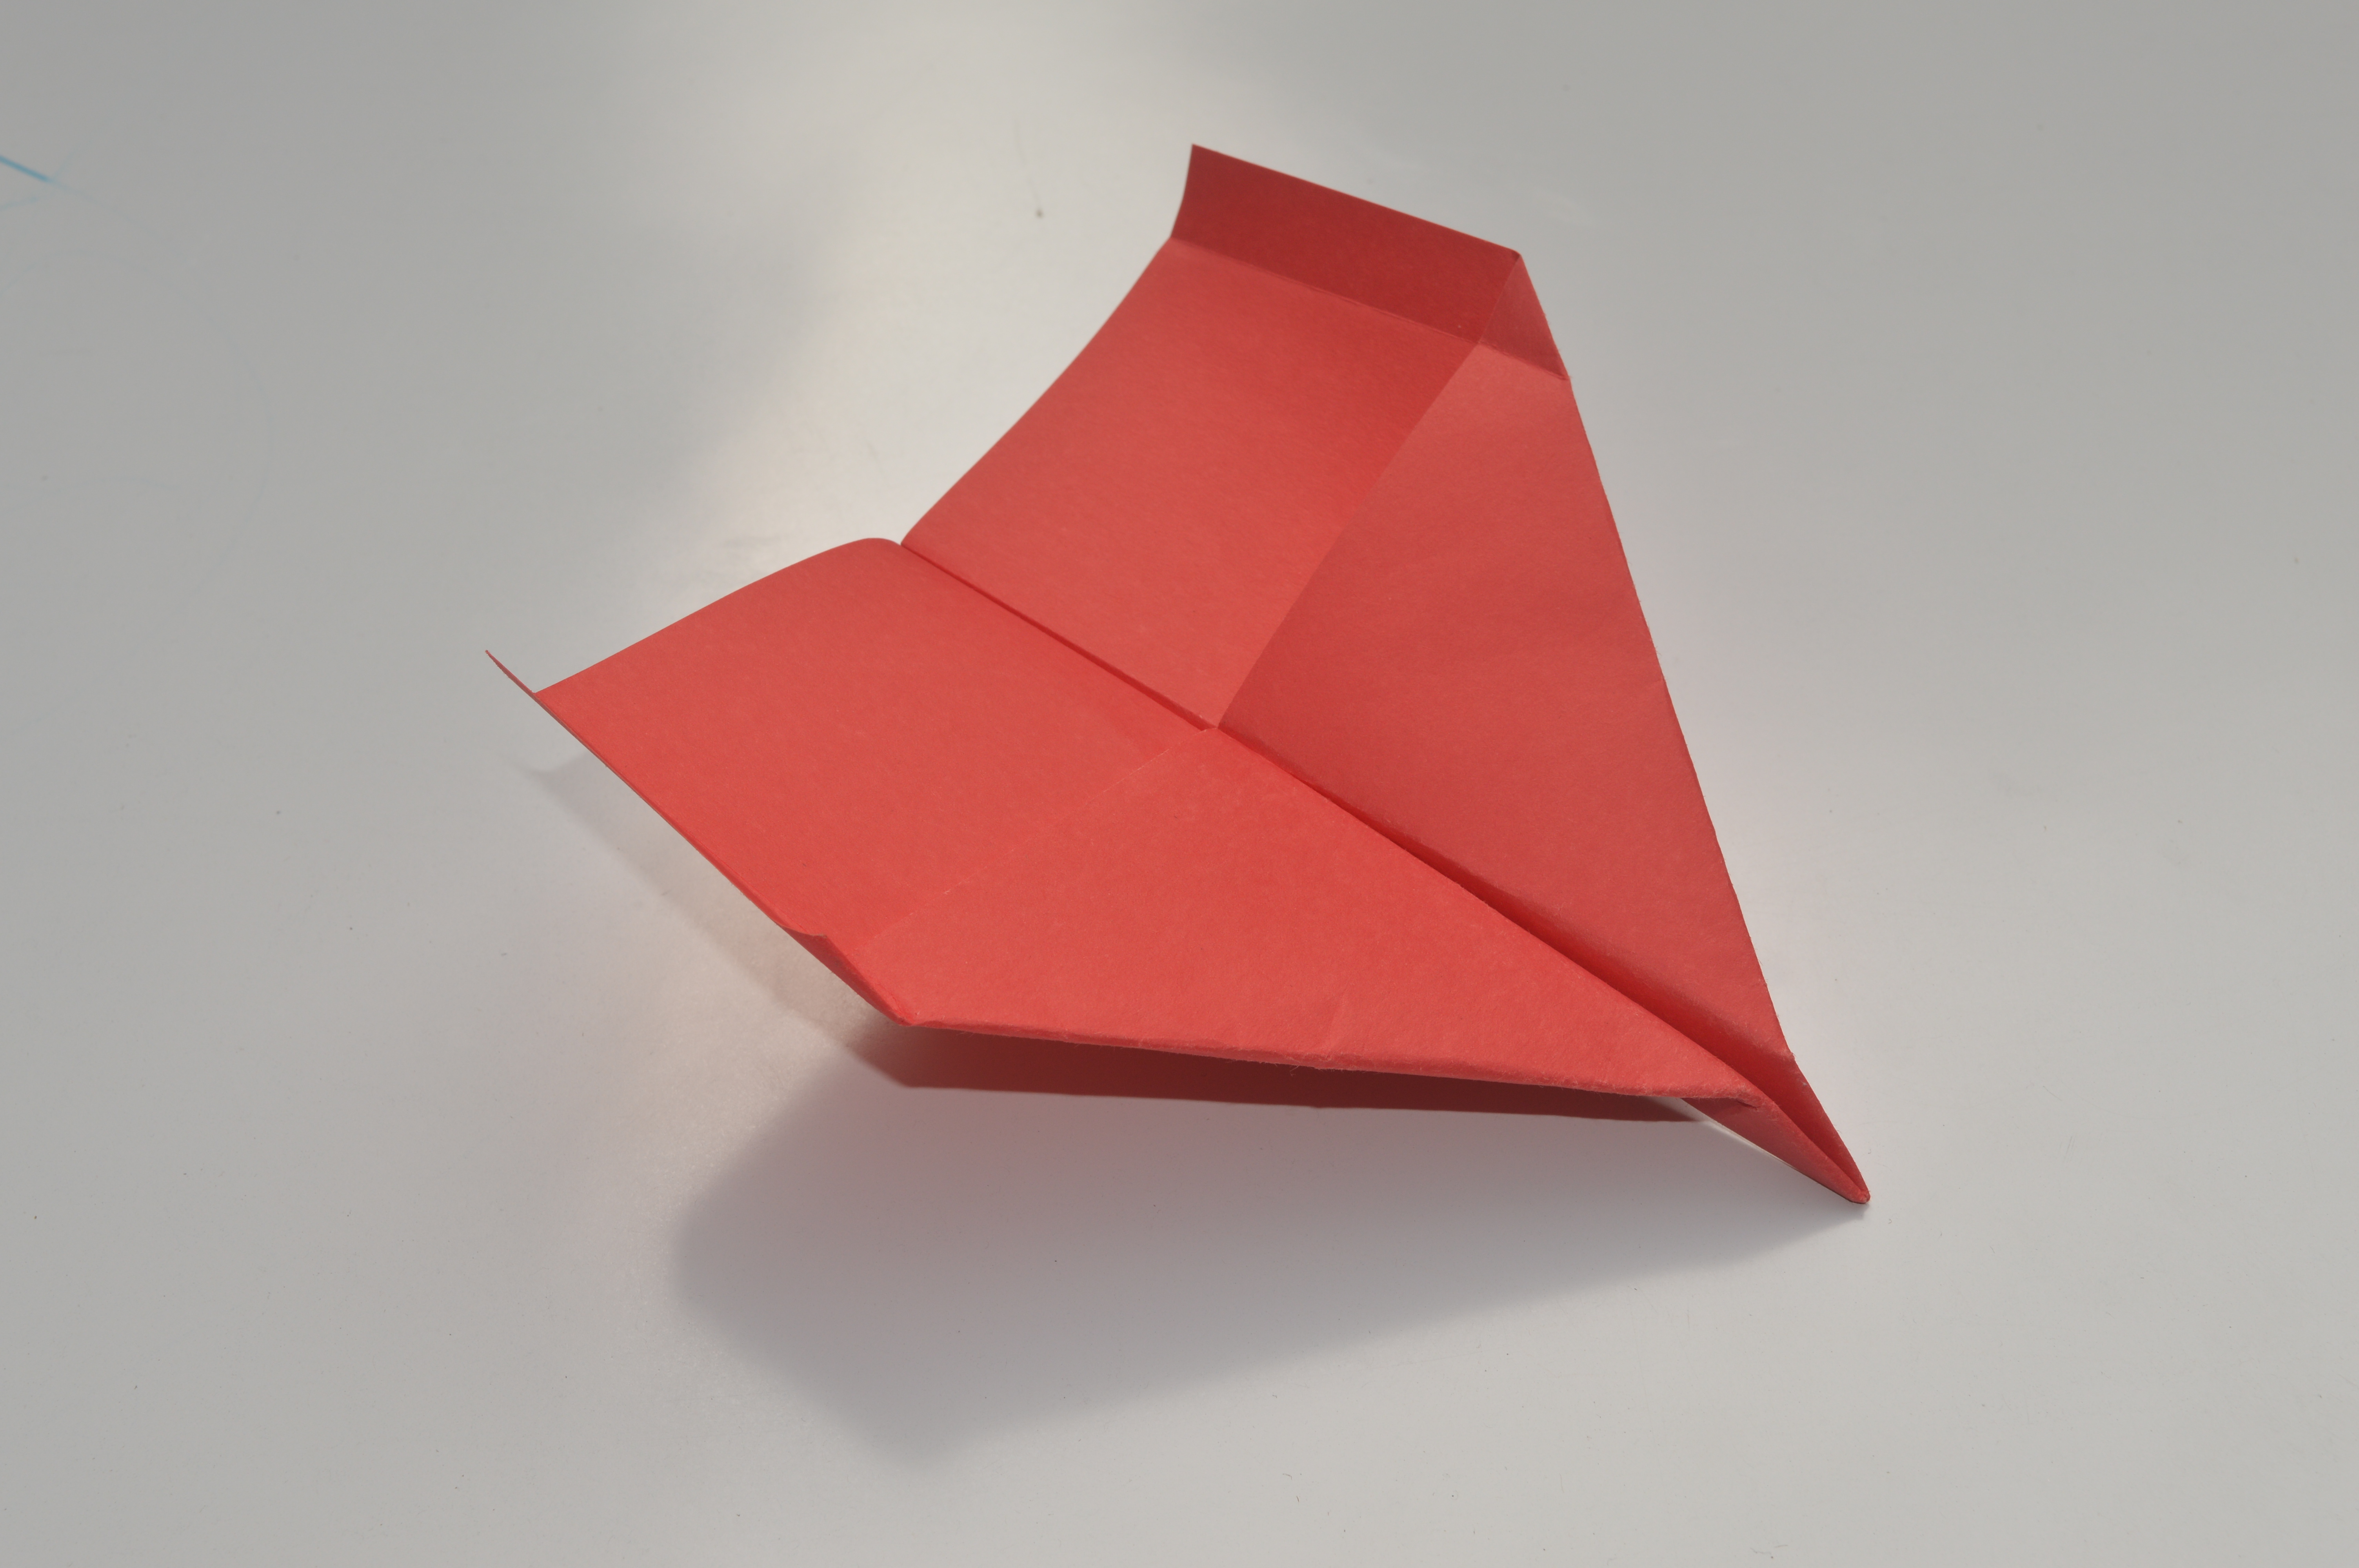 Https://www.instructables.com/id/Paper-Airplane-27/                                     Https://www.instructables.com/id/How-To-Make-A-Dart-Airplane/                                   Https://www.instructables.com/id/Paper-Airplane-Glider-3/